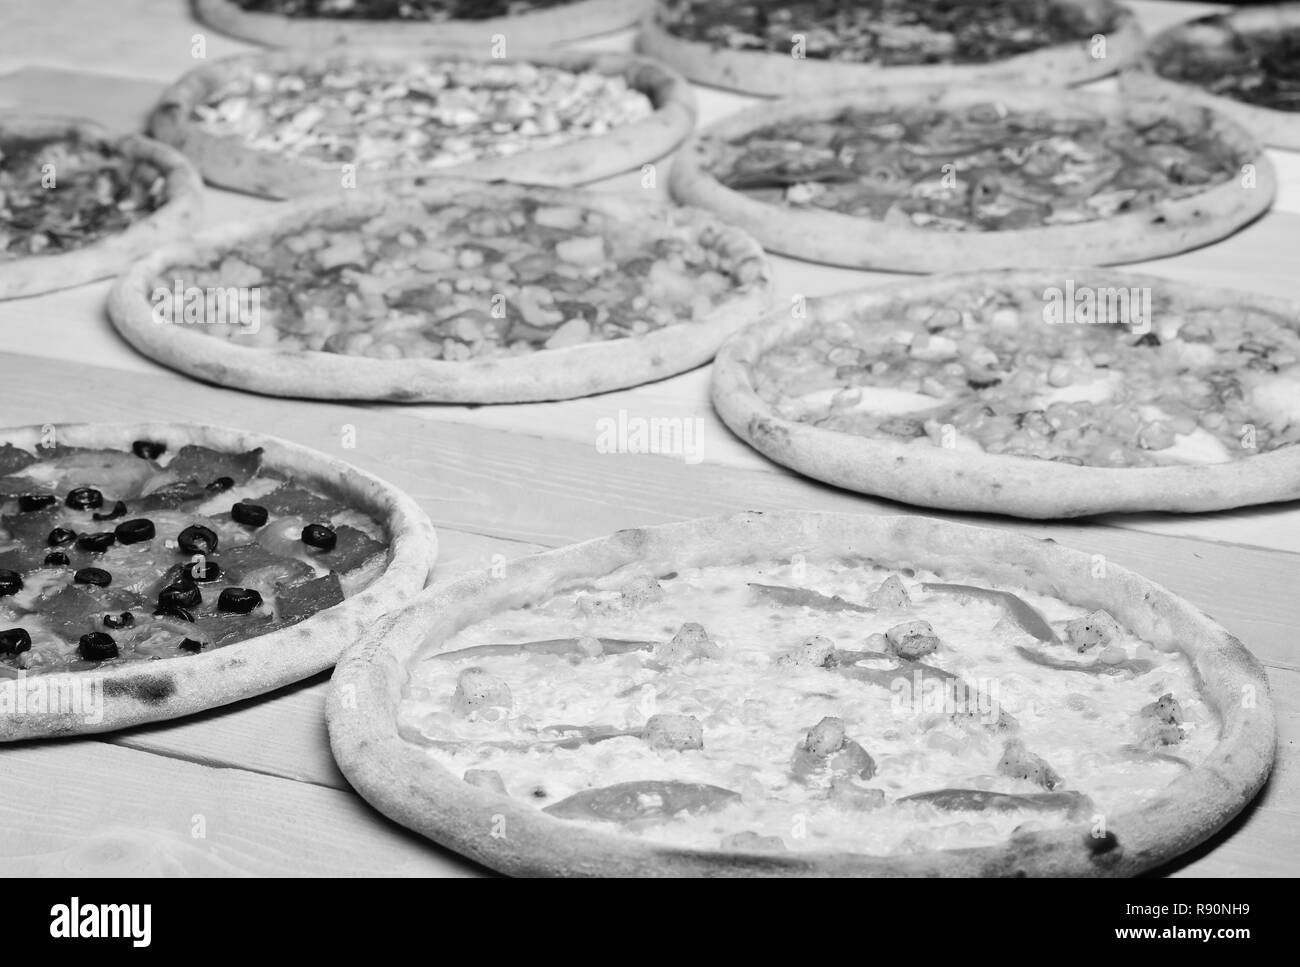 Pizza circles with meat, mushrooms, tomatoes and cheese on wooden background. Take away food with various ingredients and crunchy edges. Different pizza set for menu. Fast food restaurant concept - Stock Image